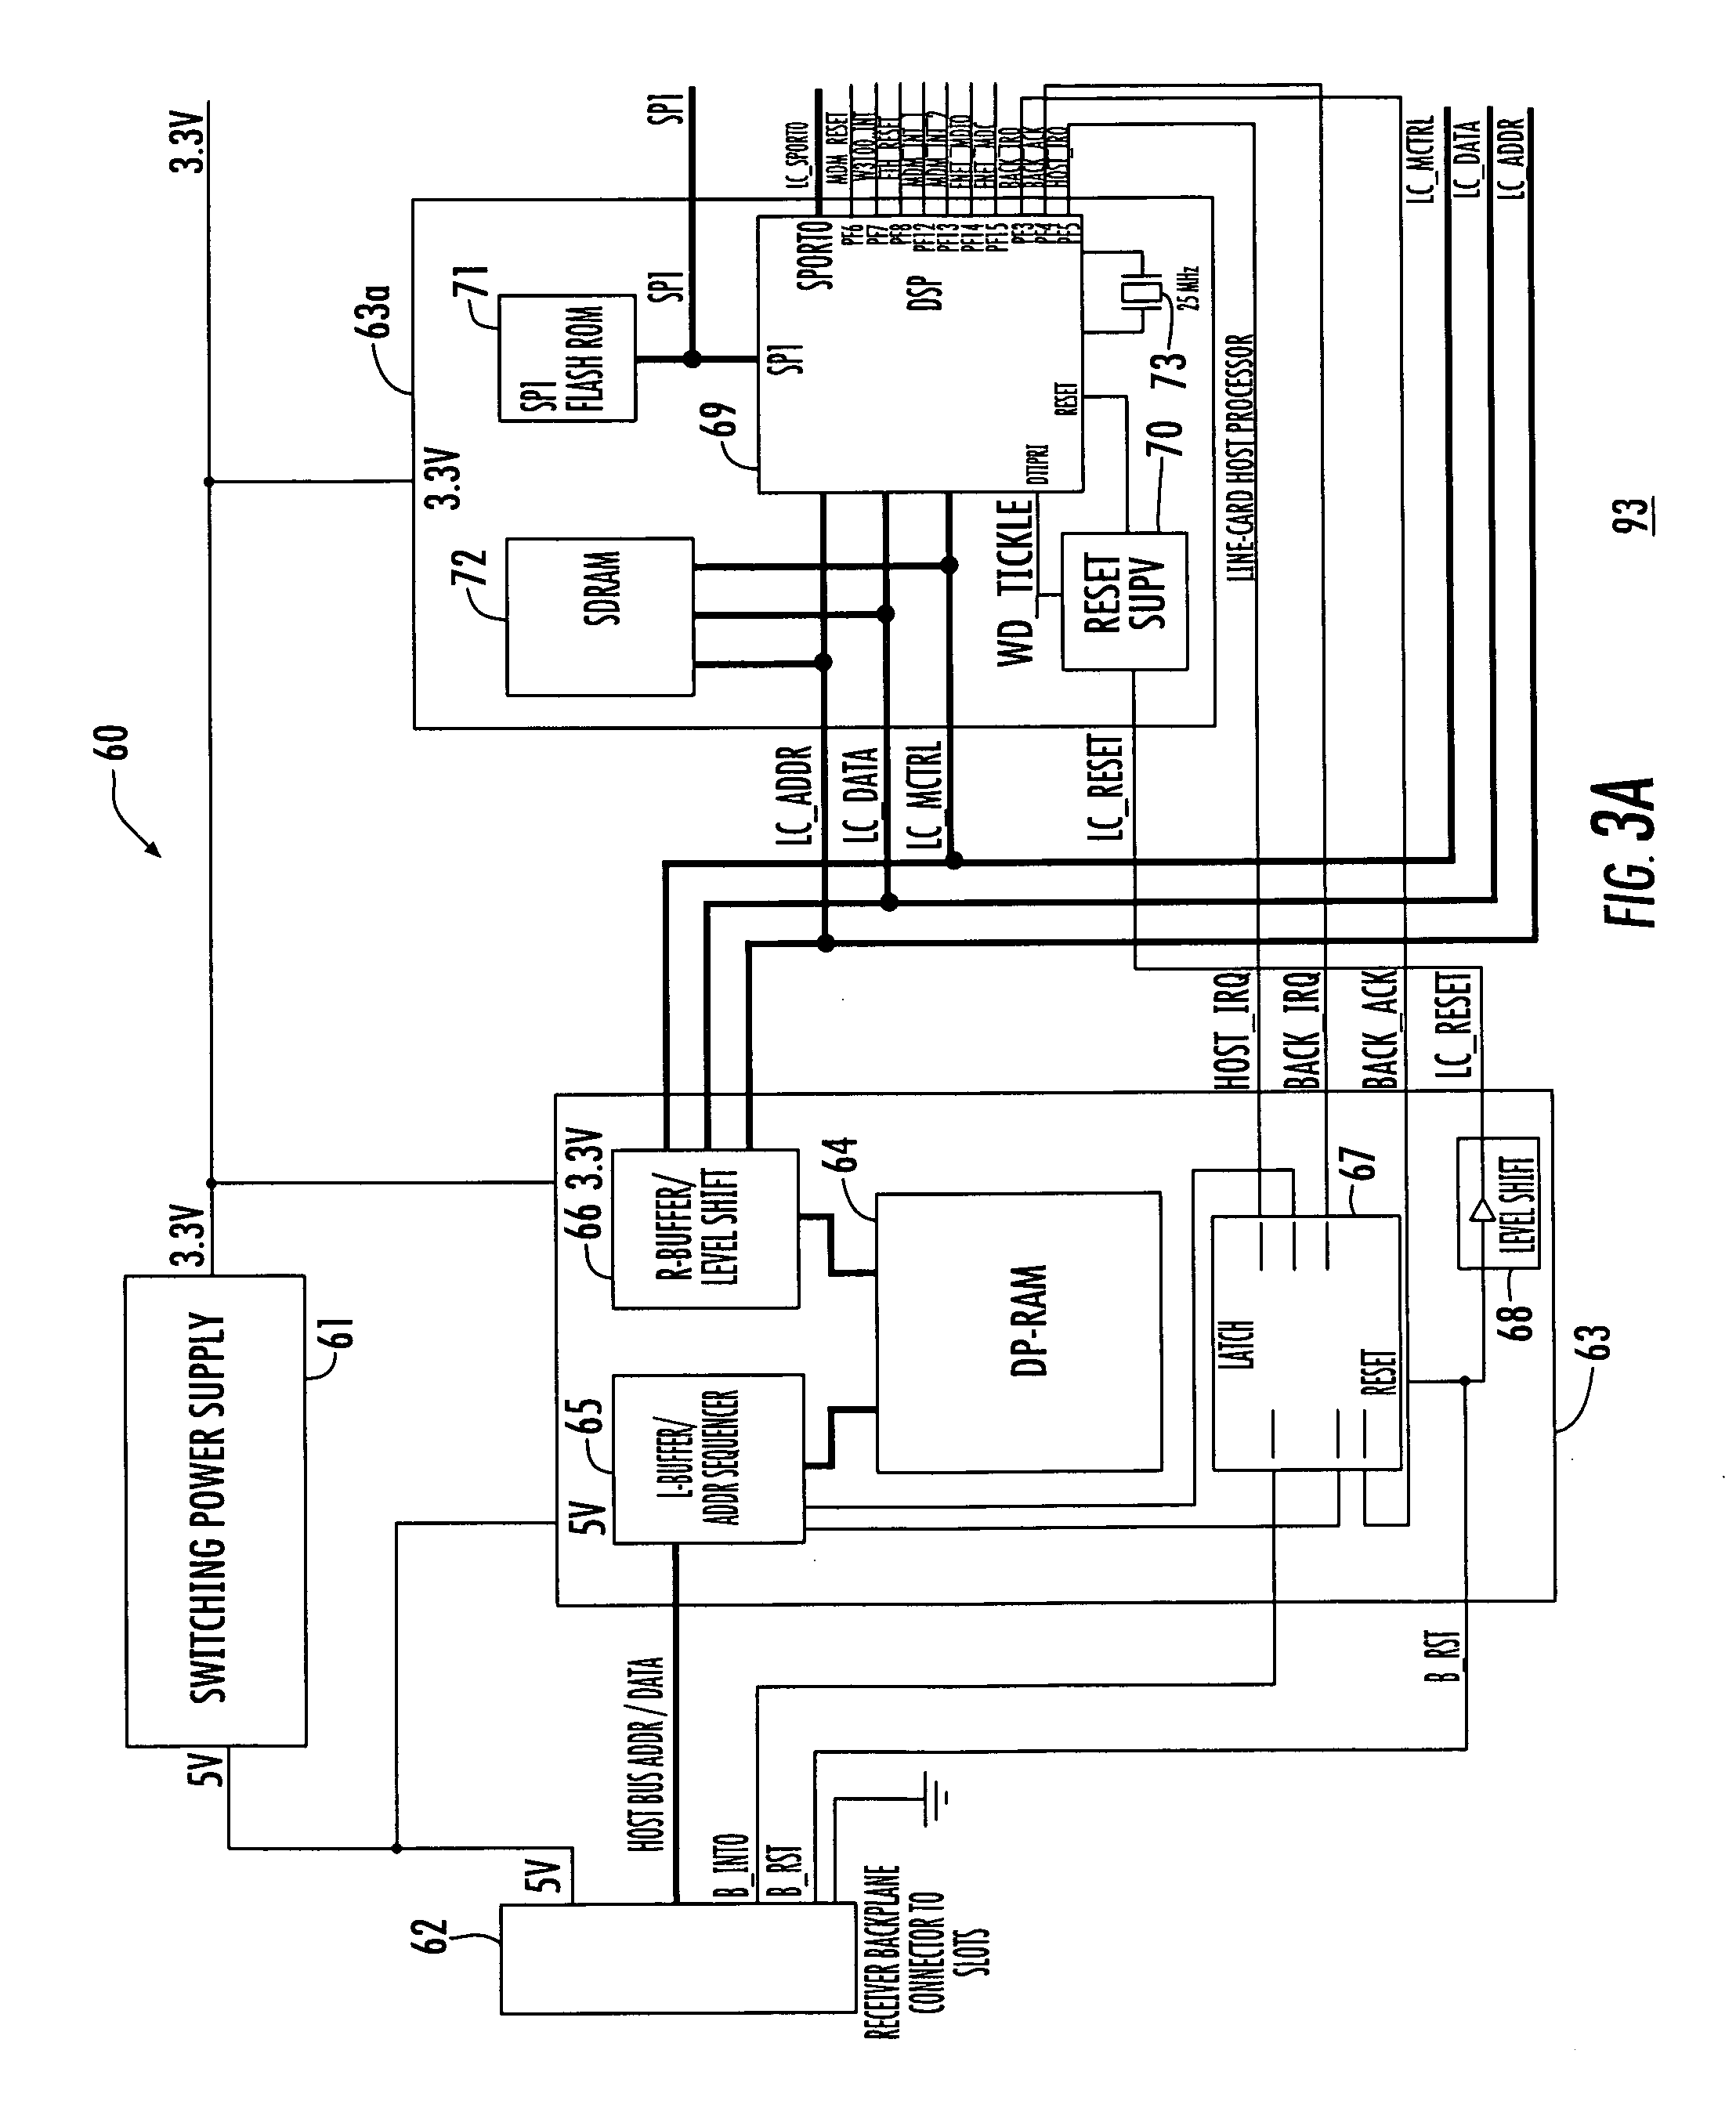 US20090058630A1 20090305 D00004?resize\\\\\\\=665%2C814 goodman sequencer wiring diagram fan sequencer circuit, marvair goodman sequencer wiring diagram at n-0.co